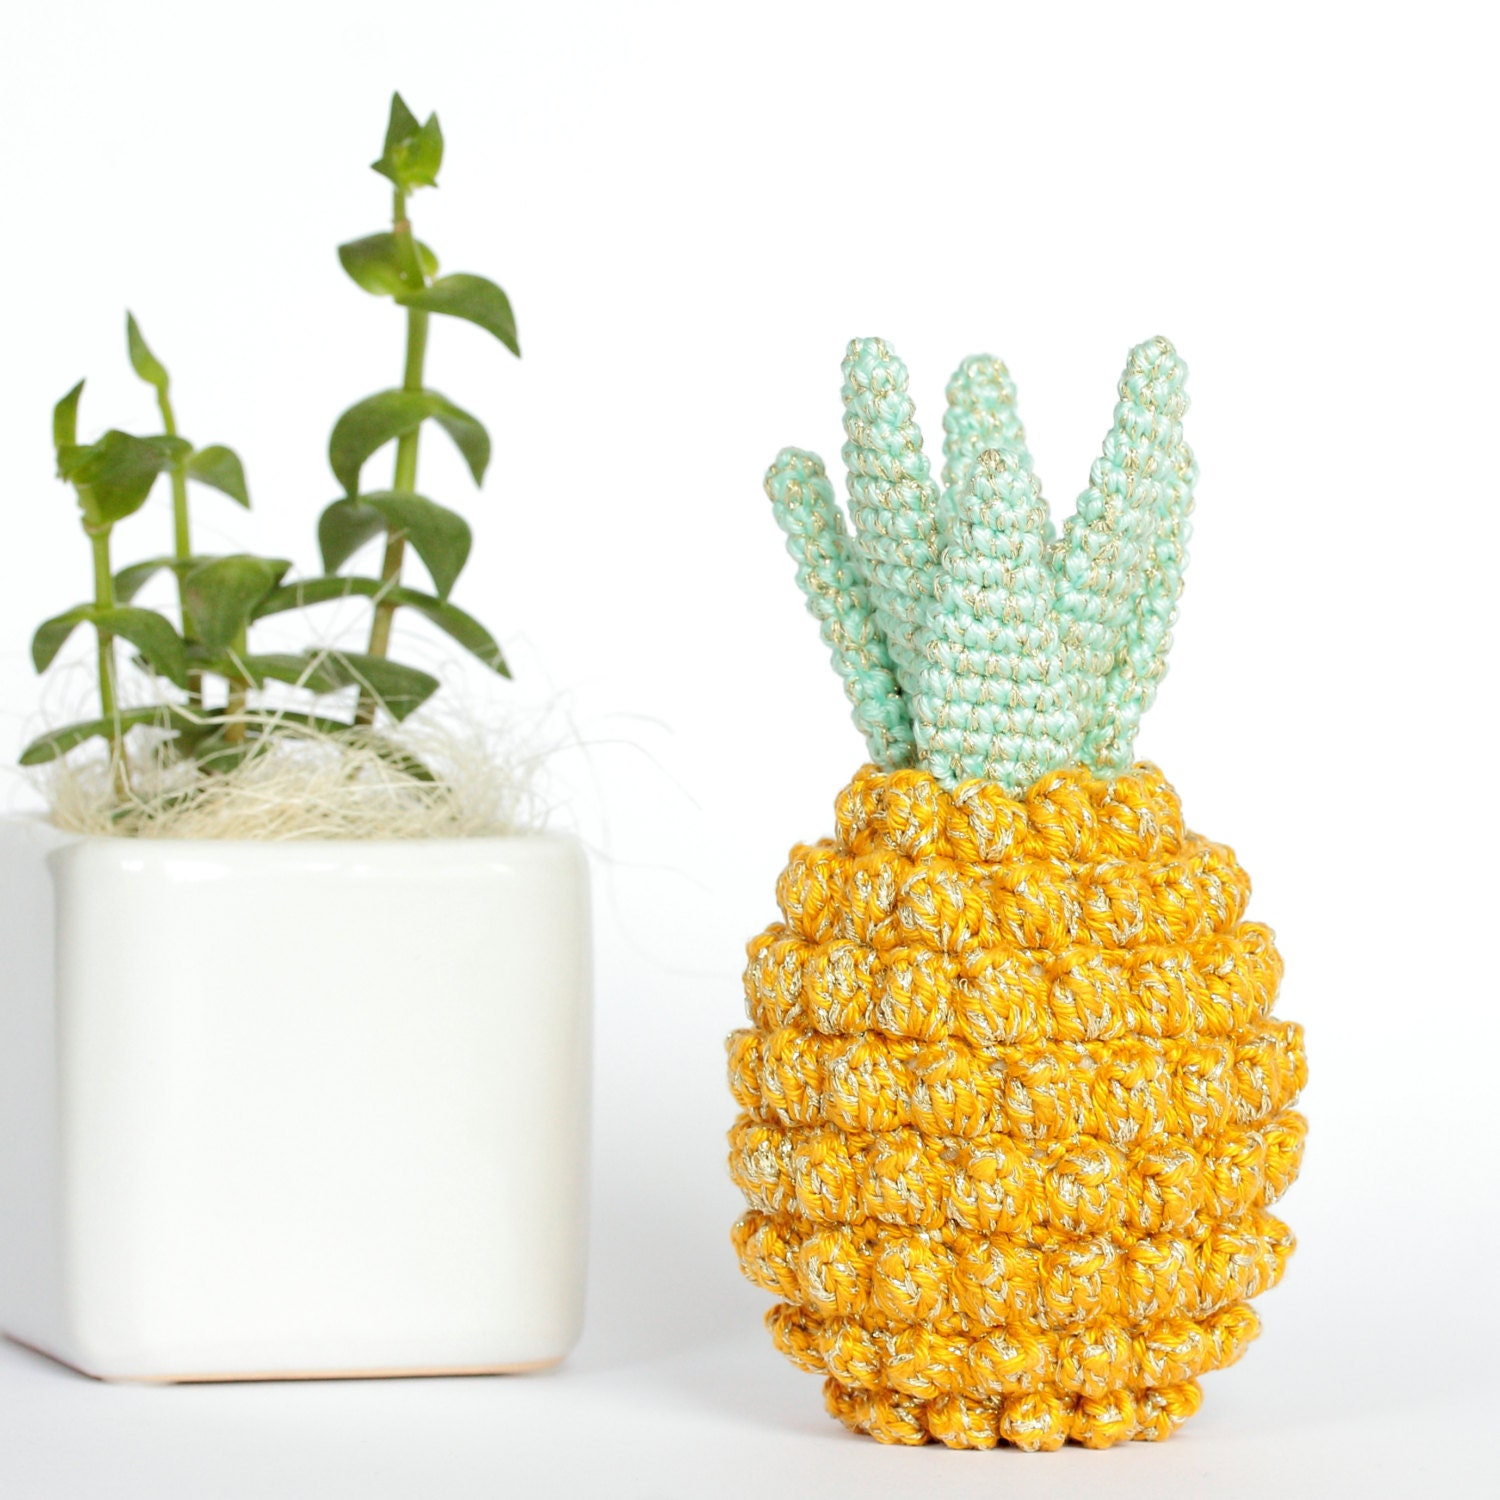 Crochet pineapple decor pineapple home decor pineapple Ananas dekoration